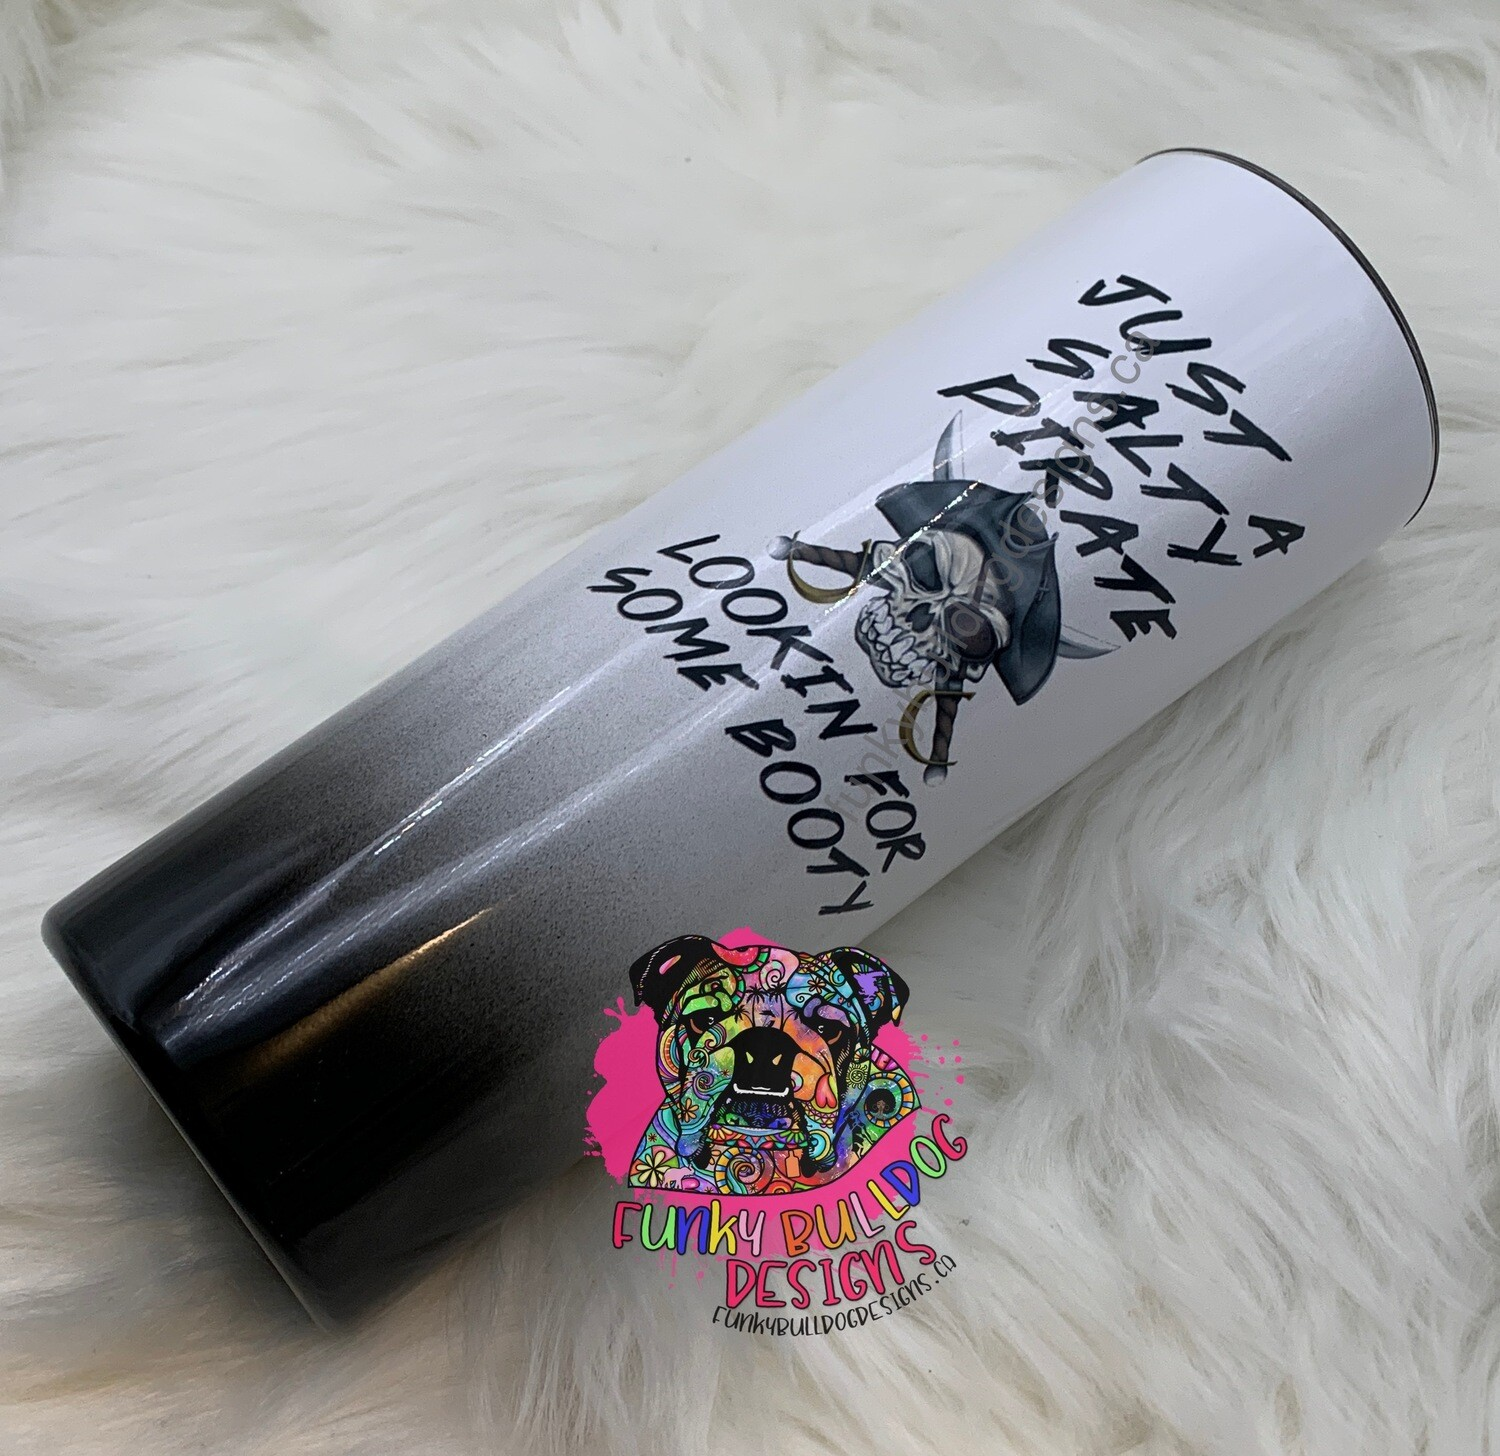 20oz stainless steel tall skinny - Pirate Camping Tumbler - Just a salty Pirate lookin for some booty